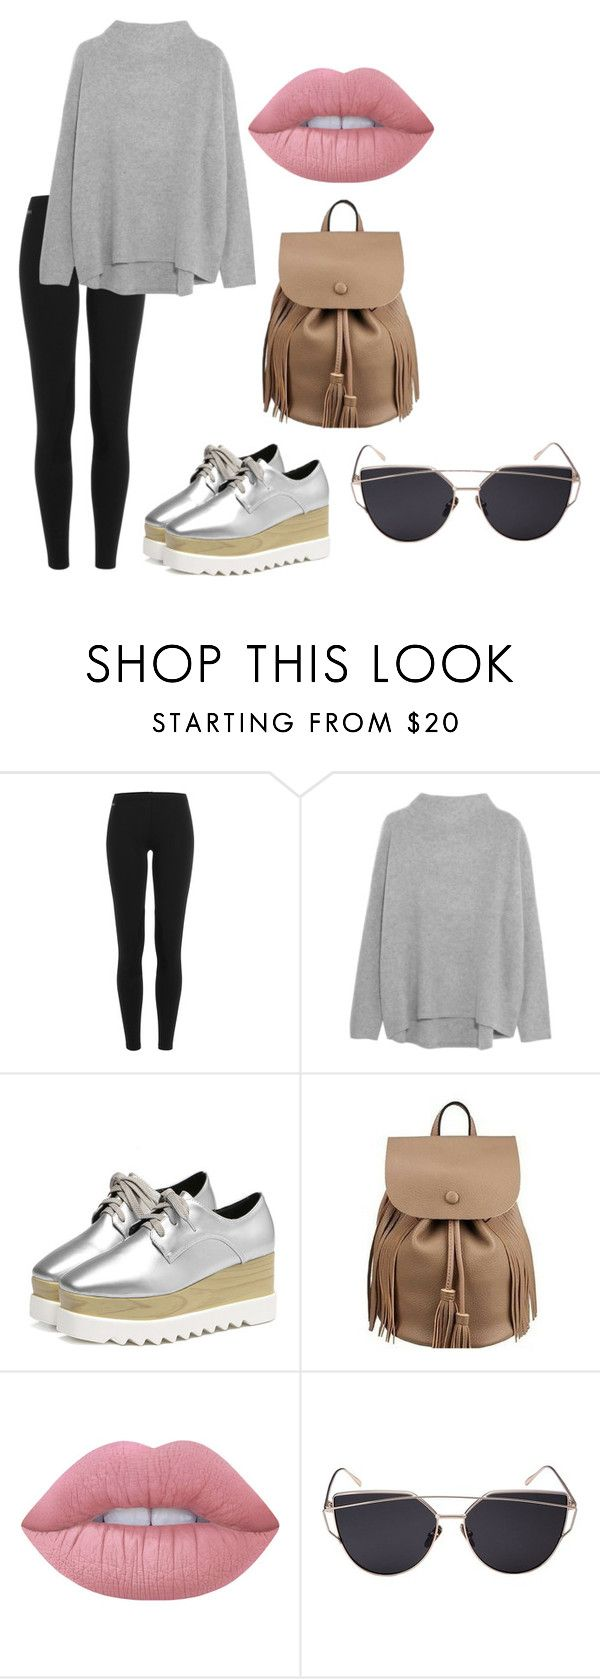 30 by espe-rebollo on Polyvore featuring moda, Vince, Polo Ralph Lauren and Lime Crime